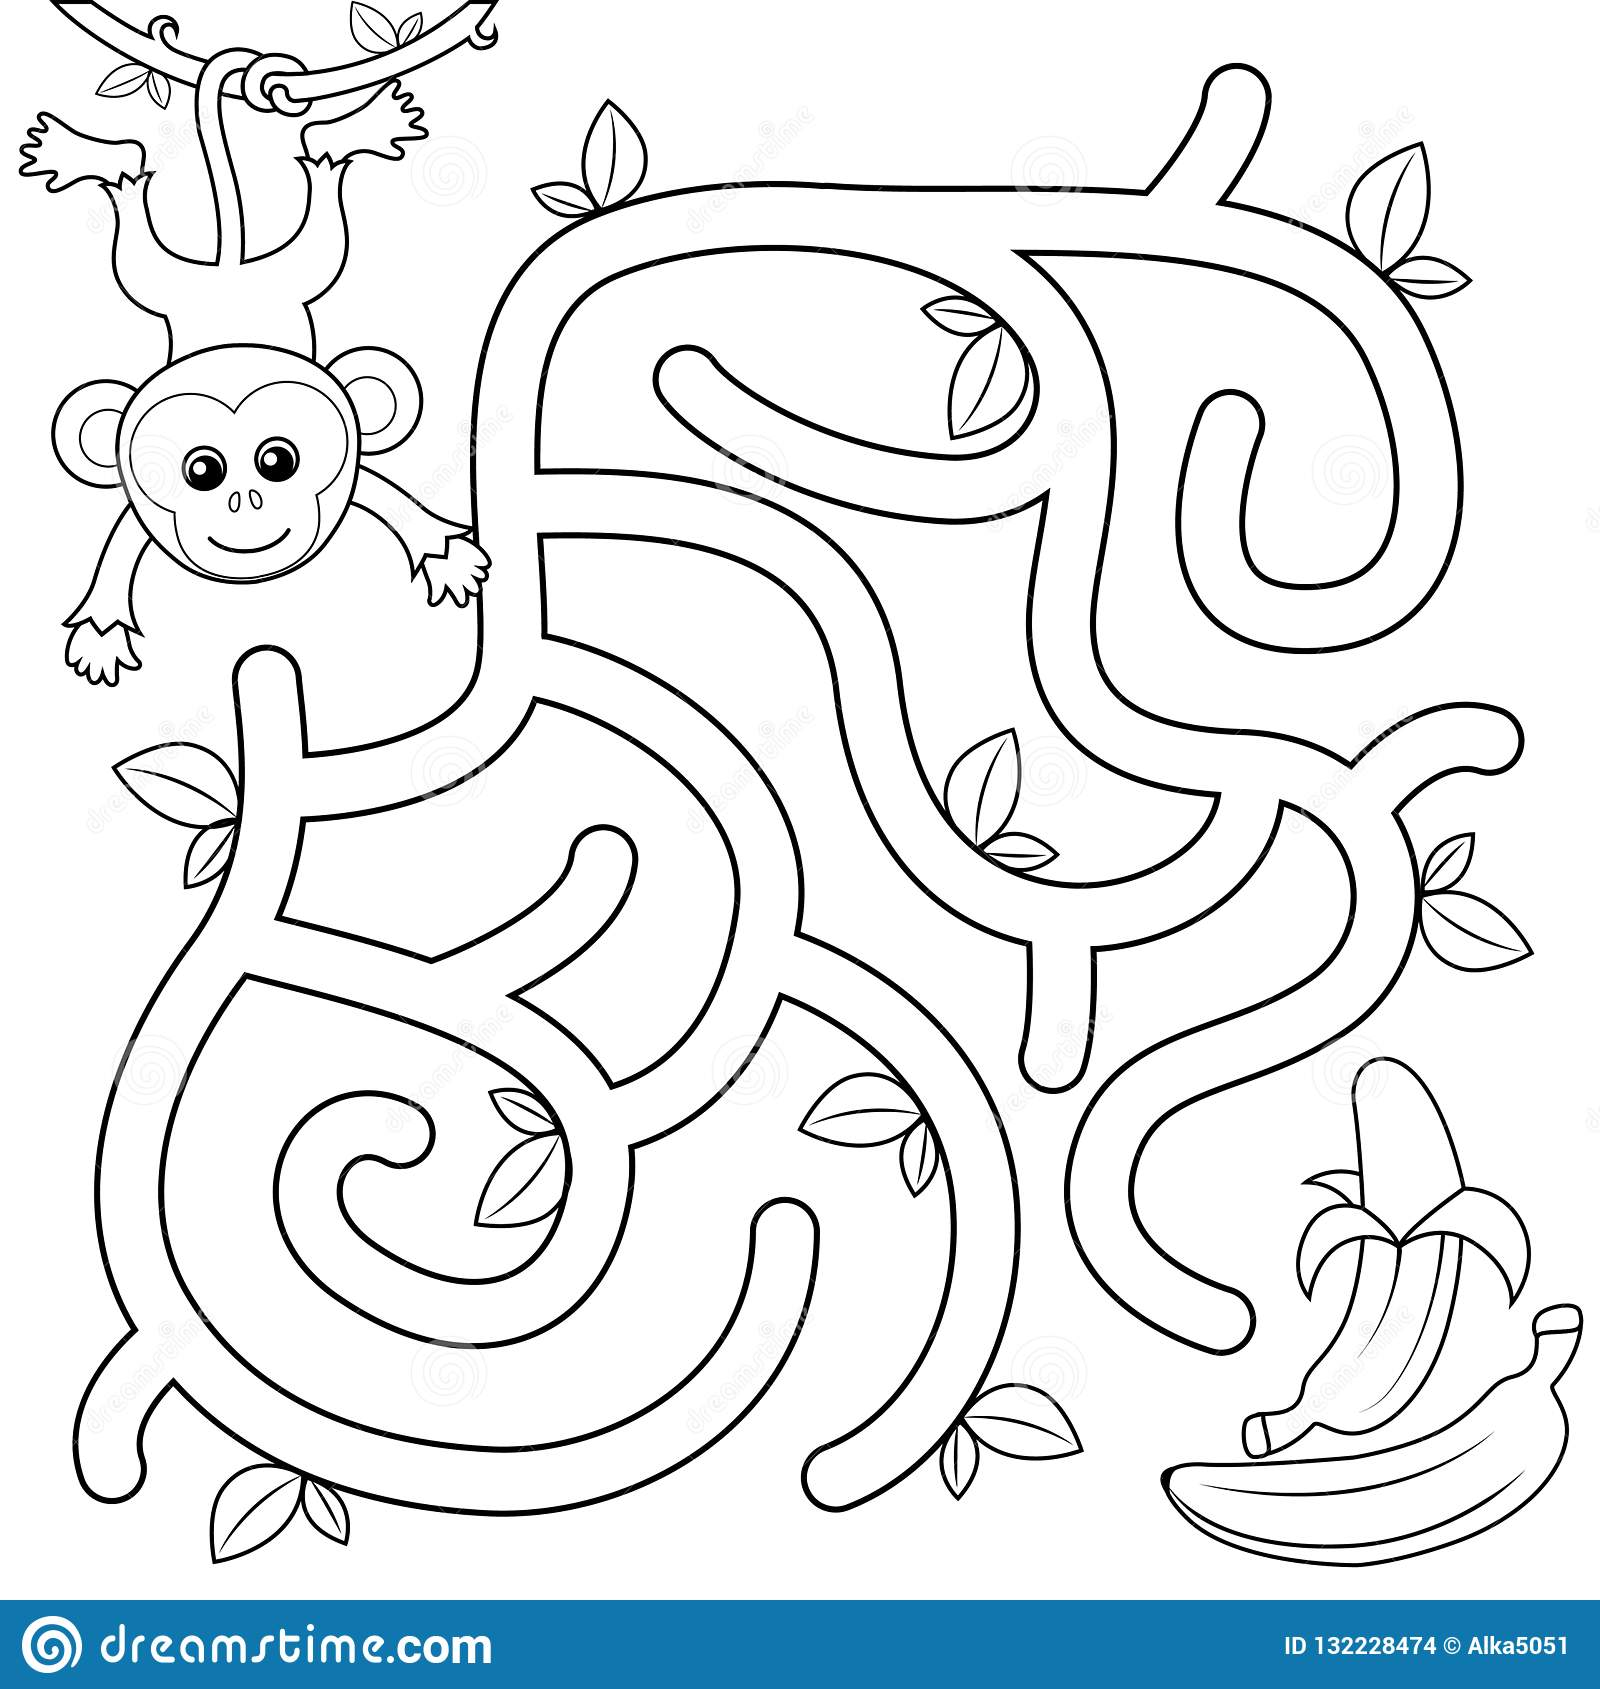 Help Monkey Find Path To Banana Labyrinth Maze Game For